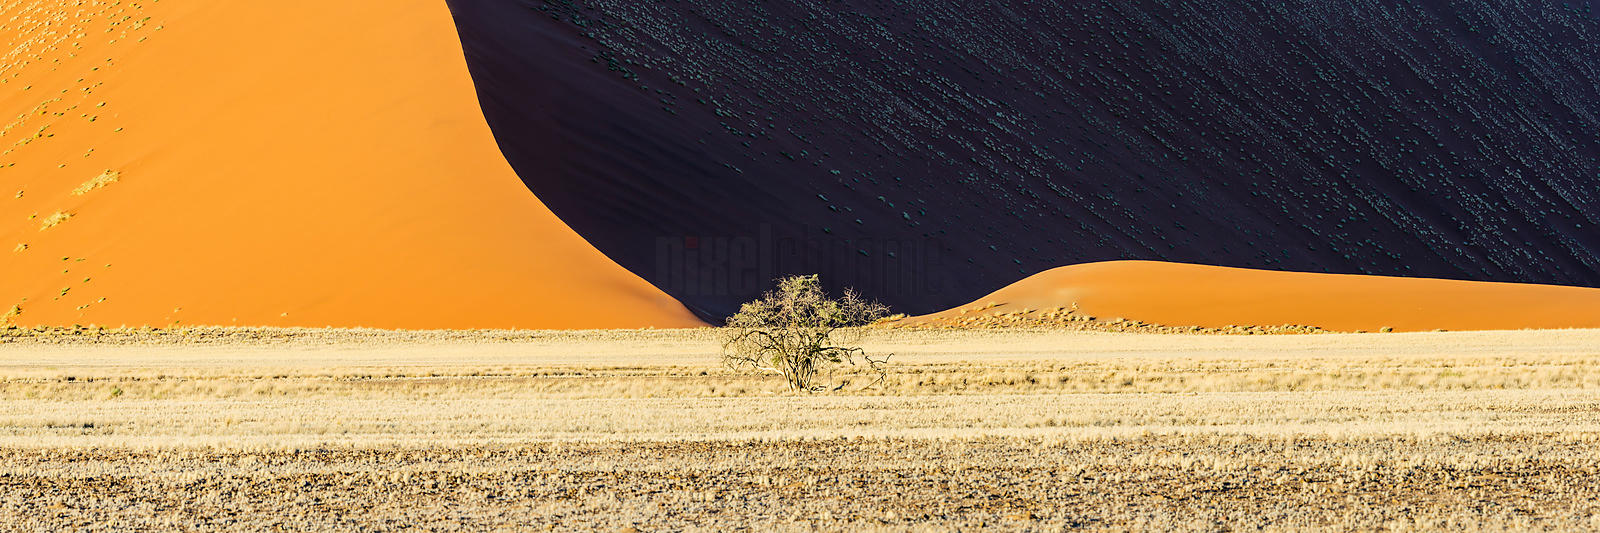 Lone Tree and Sand Dune